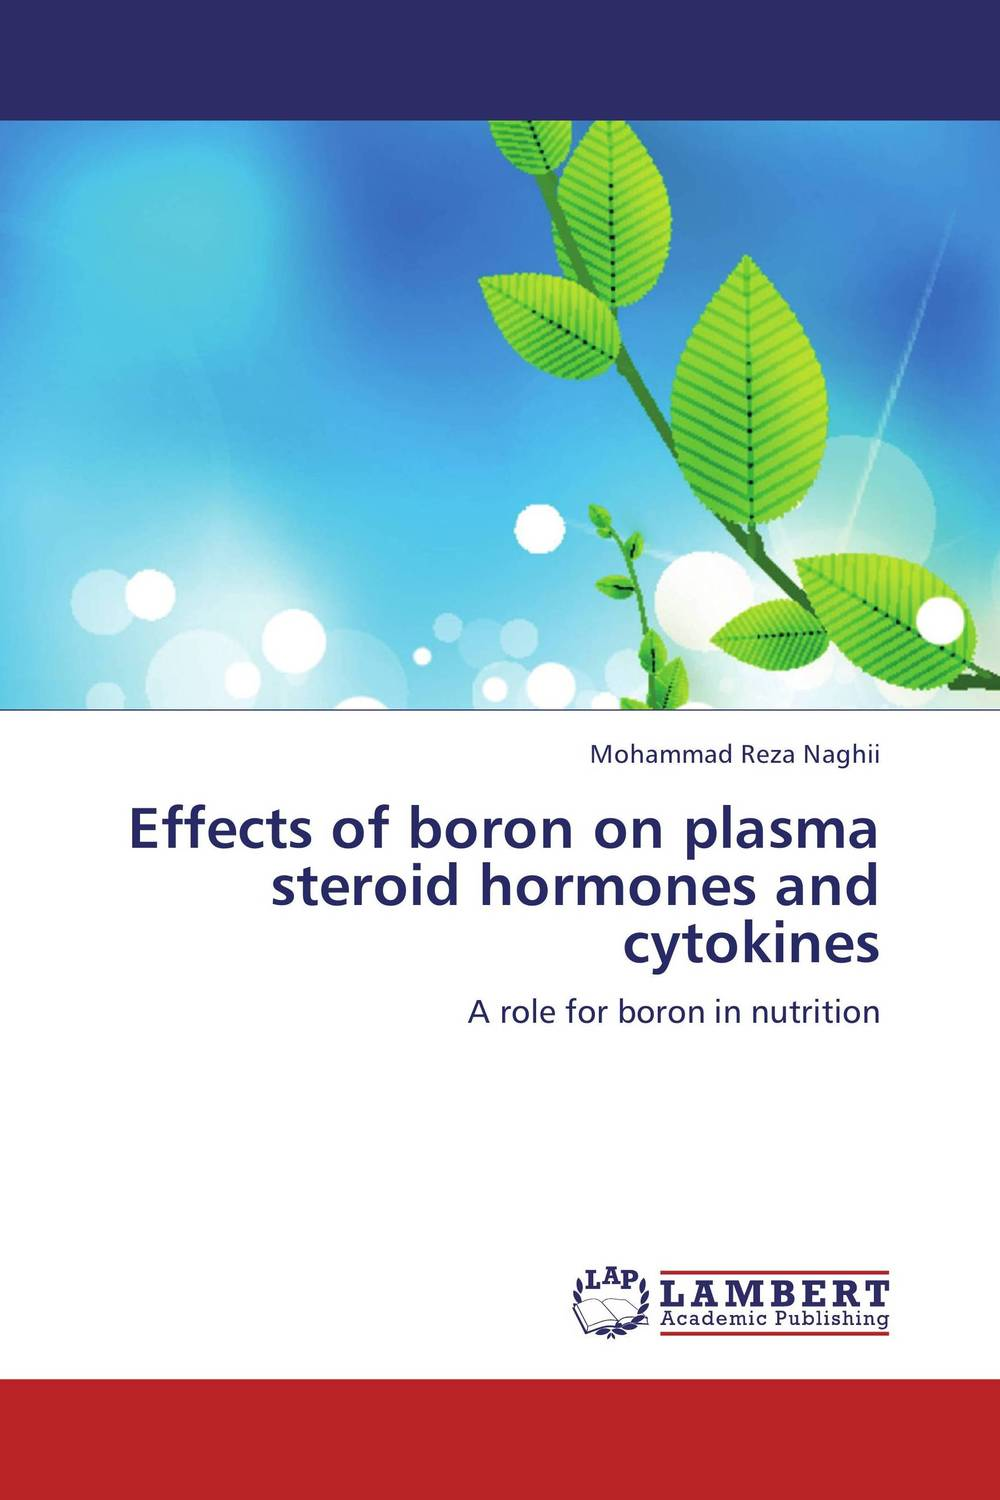 Effects of boron on plasma steroid hormones and cytokines jaspal singh and ravinder pal singh effects of aging temperature and time on synthesis of hydroxyapatite